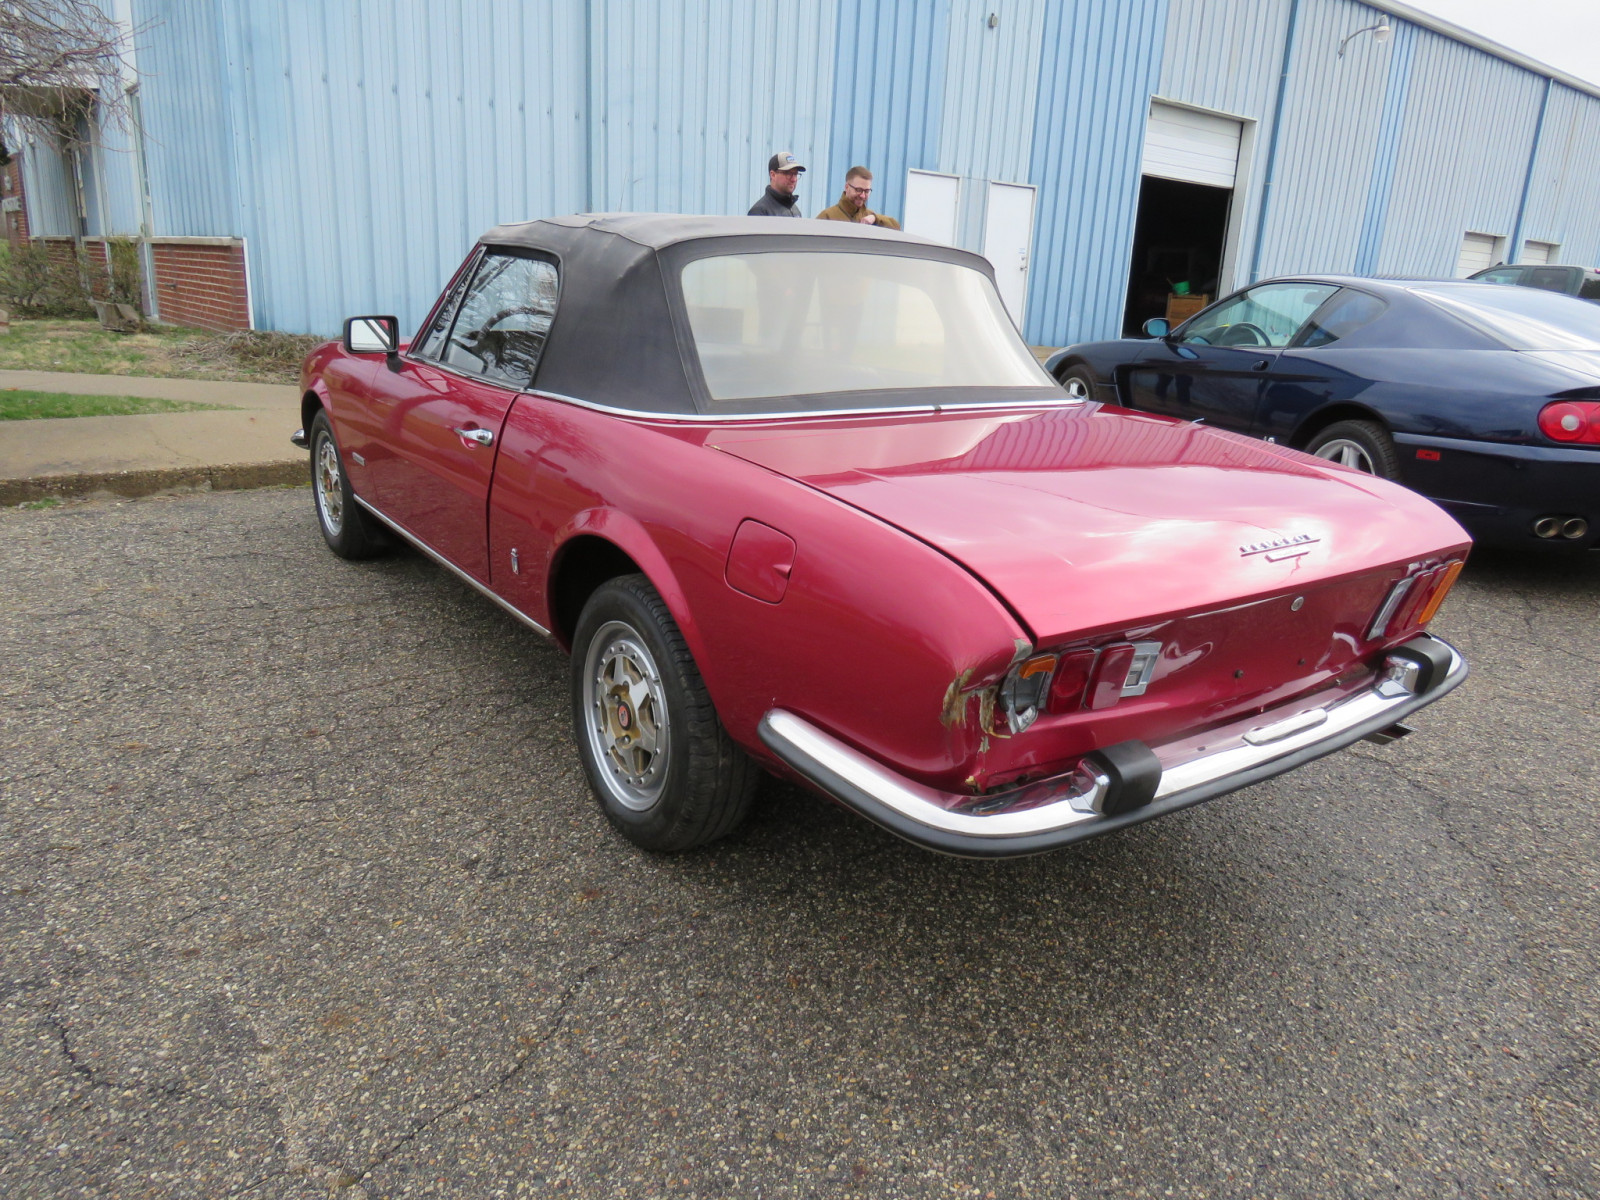 1972 Peugeot 504 Fuel Injected Convertible - Image 5